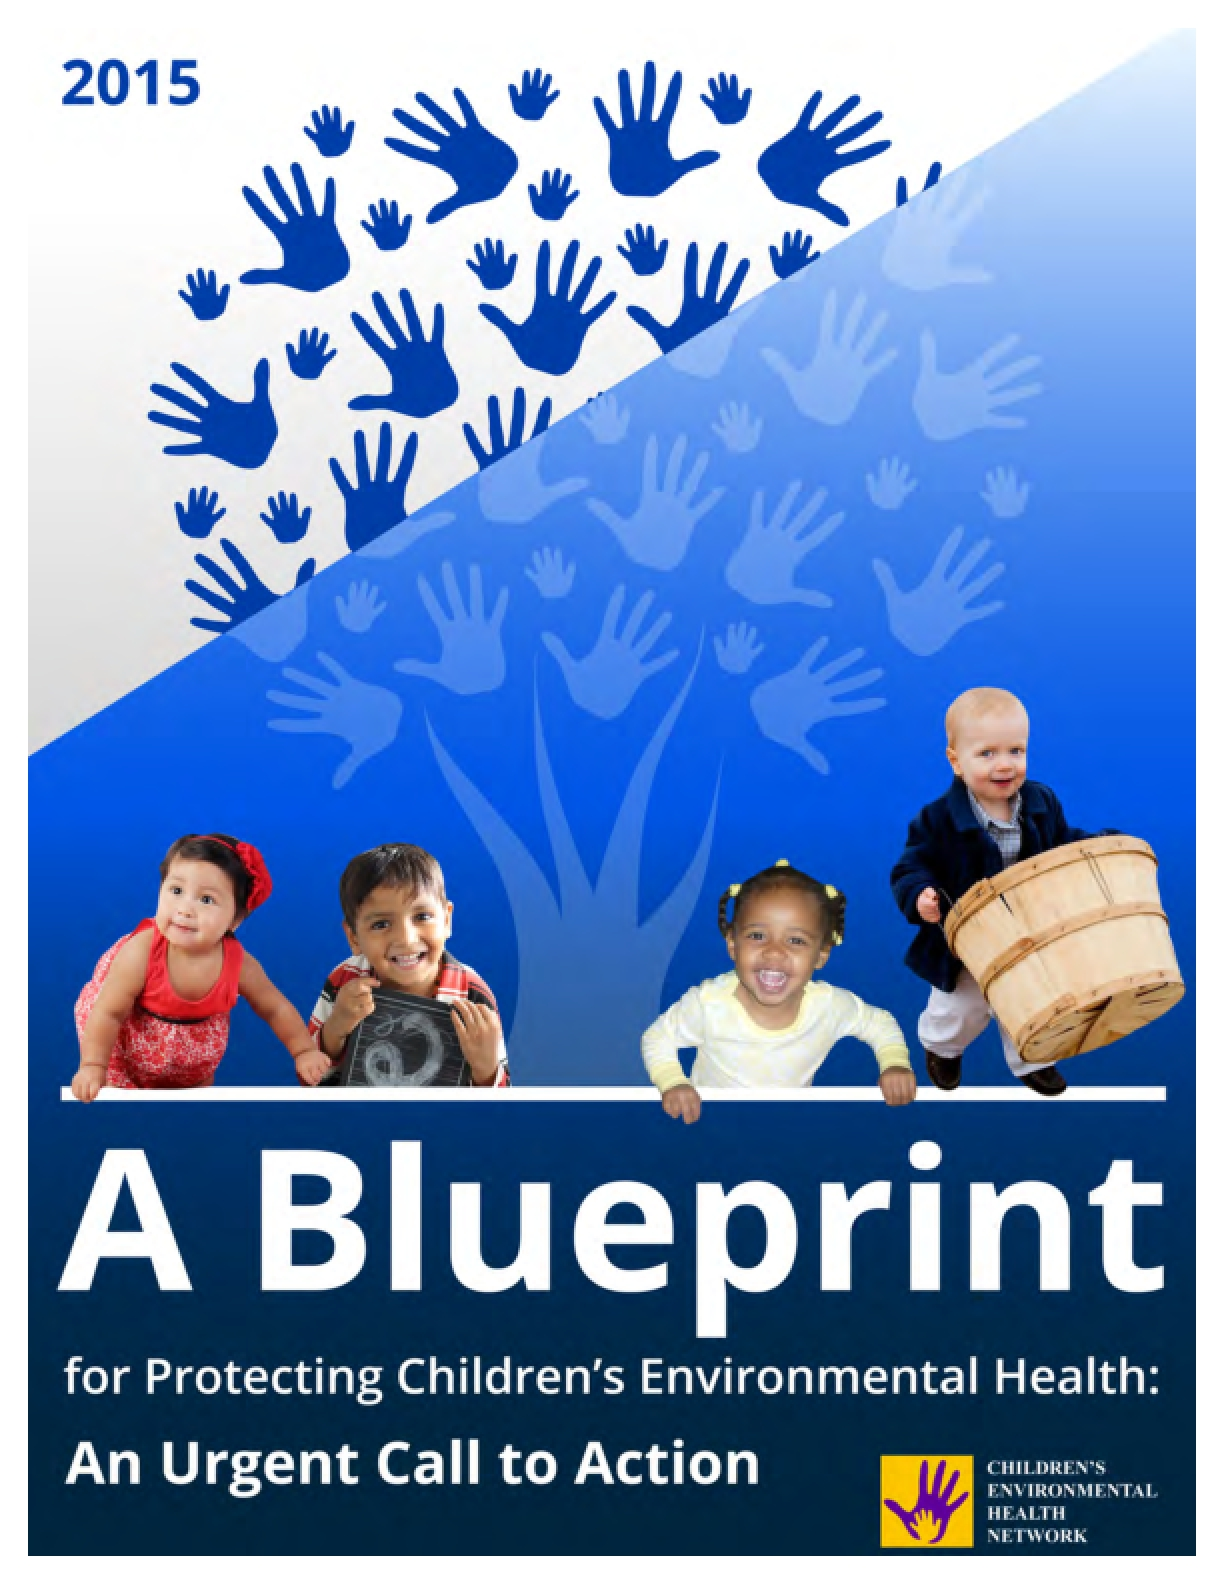 A Blueprint For Protecting Children's Environmental Health